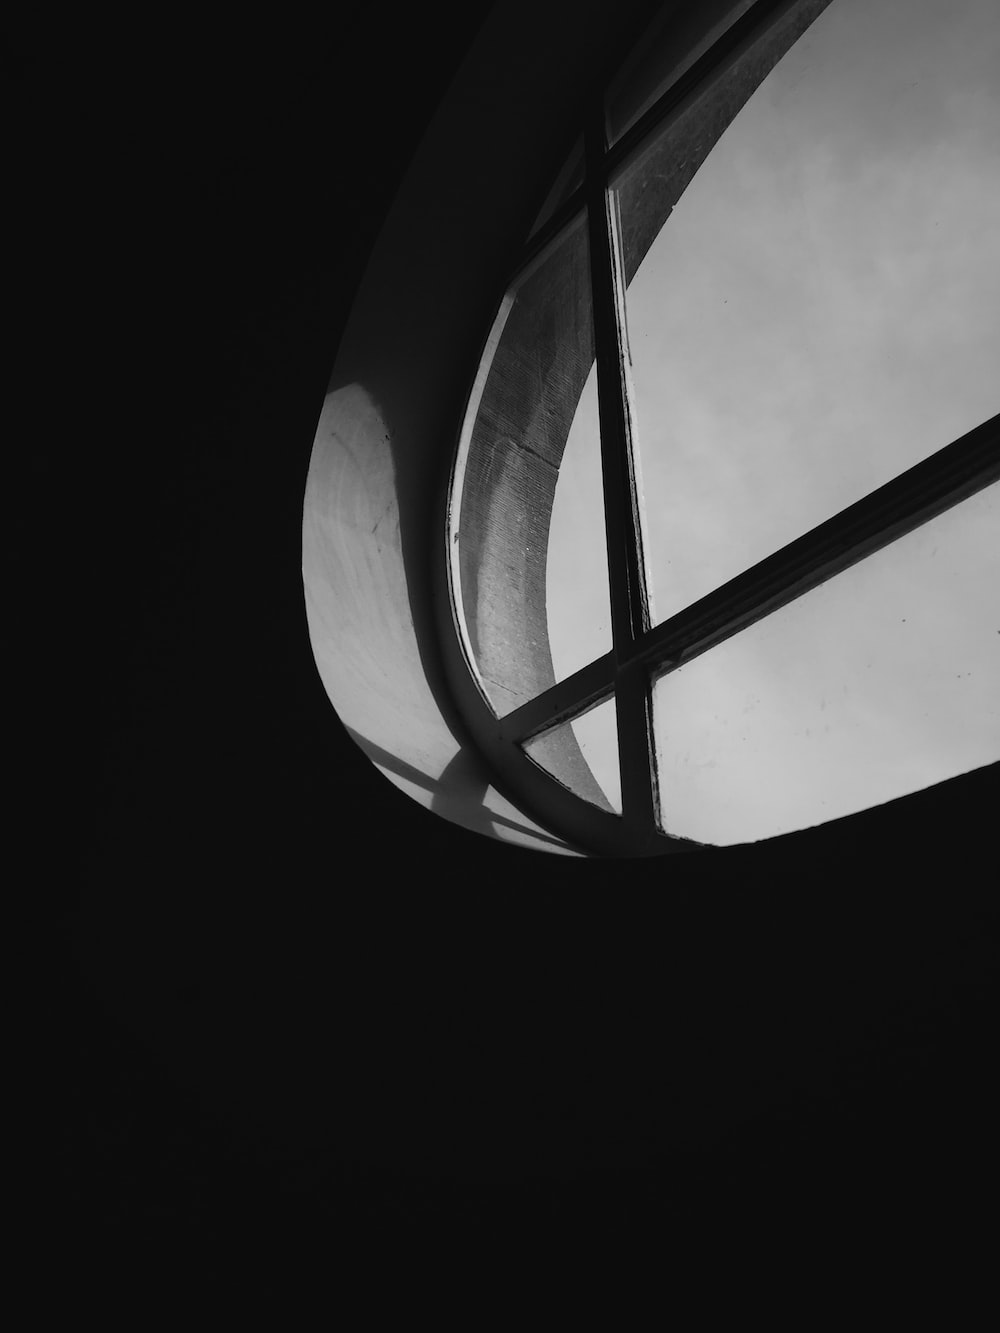 grayscale photography of round clear glass window